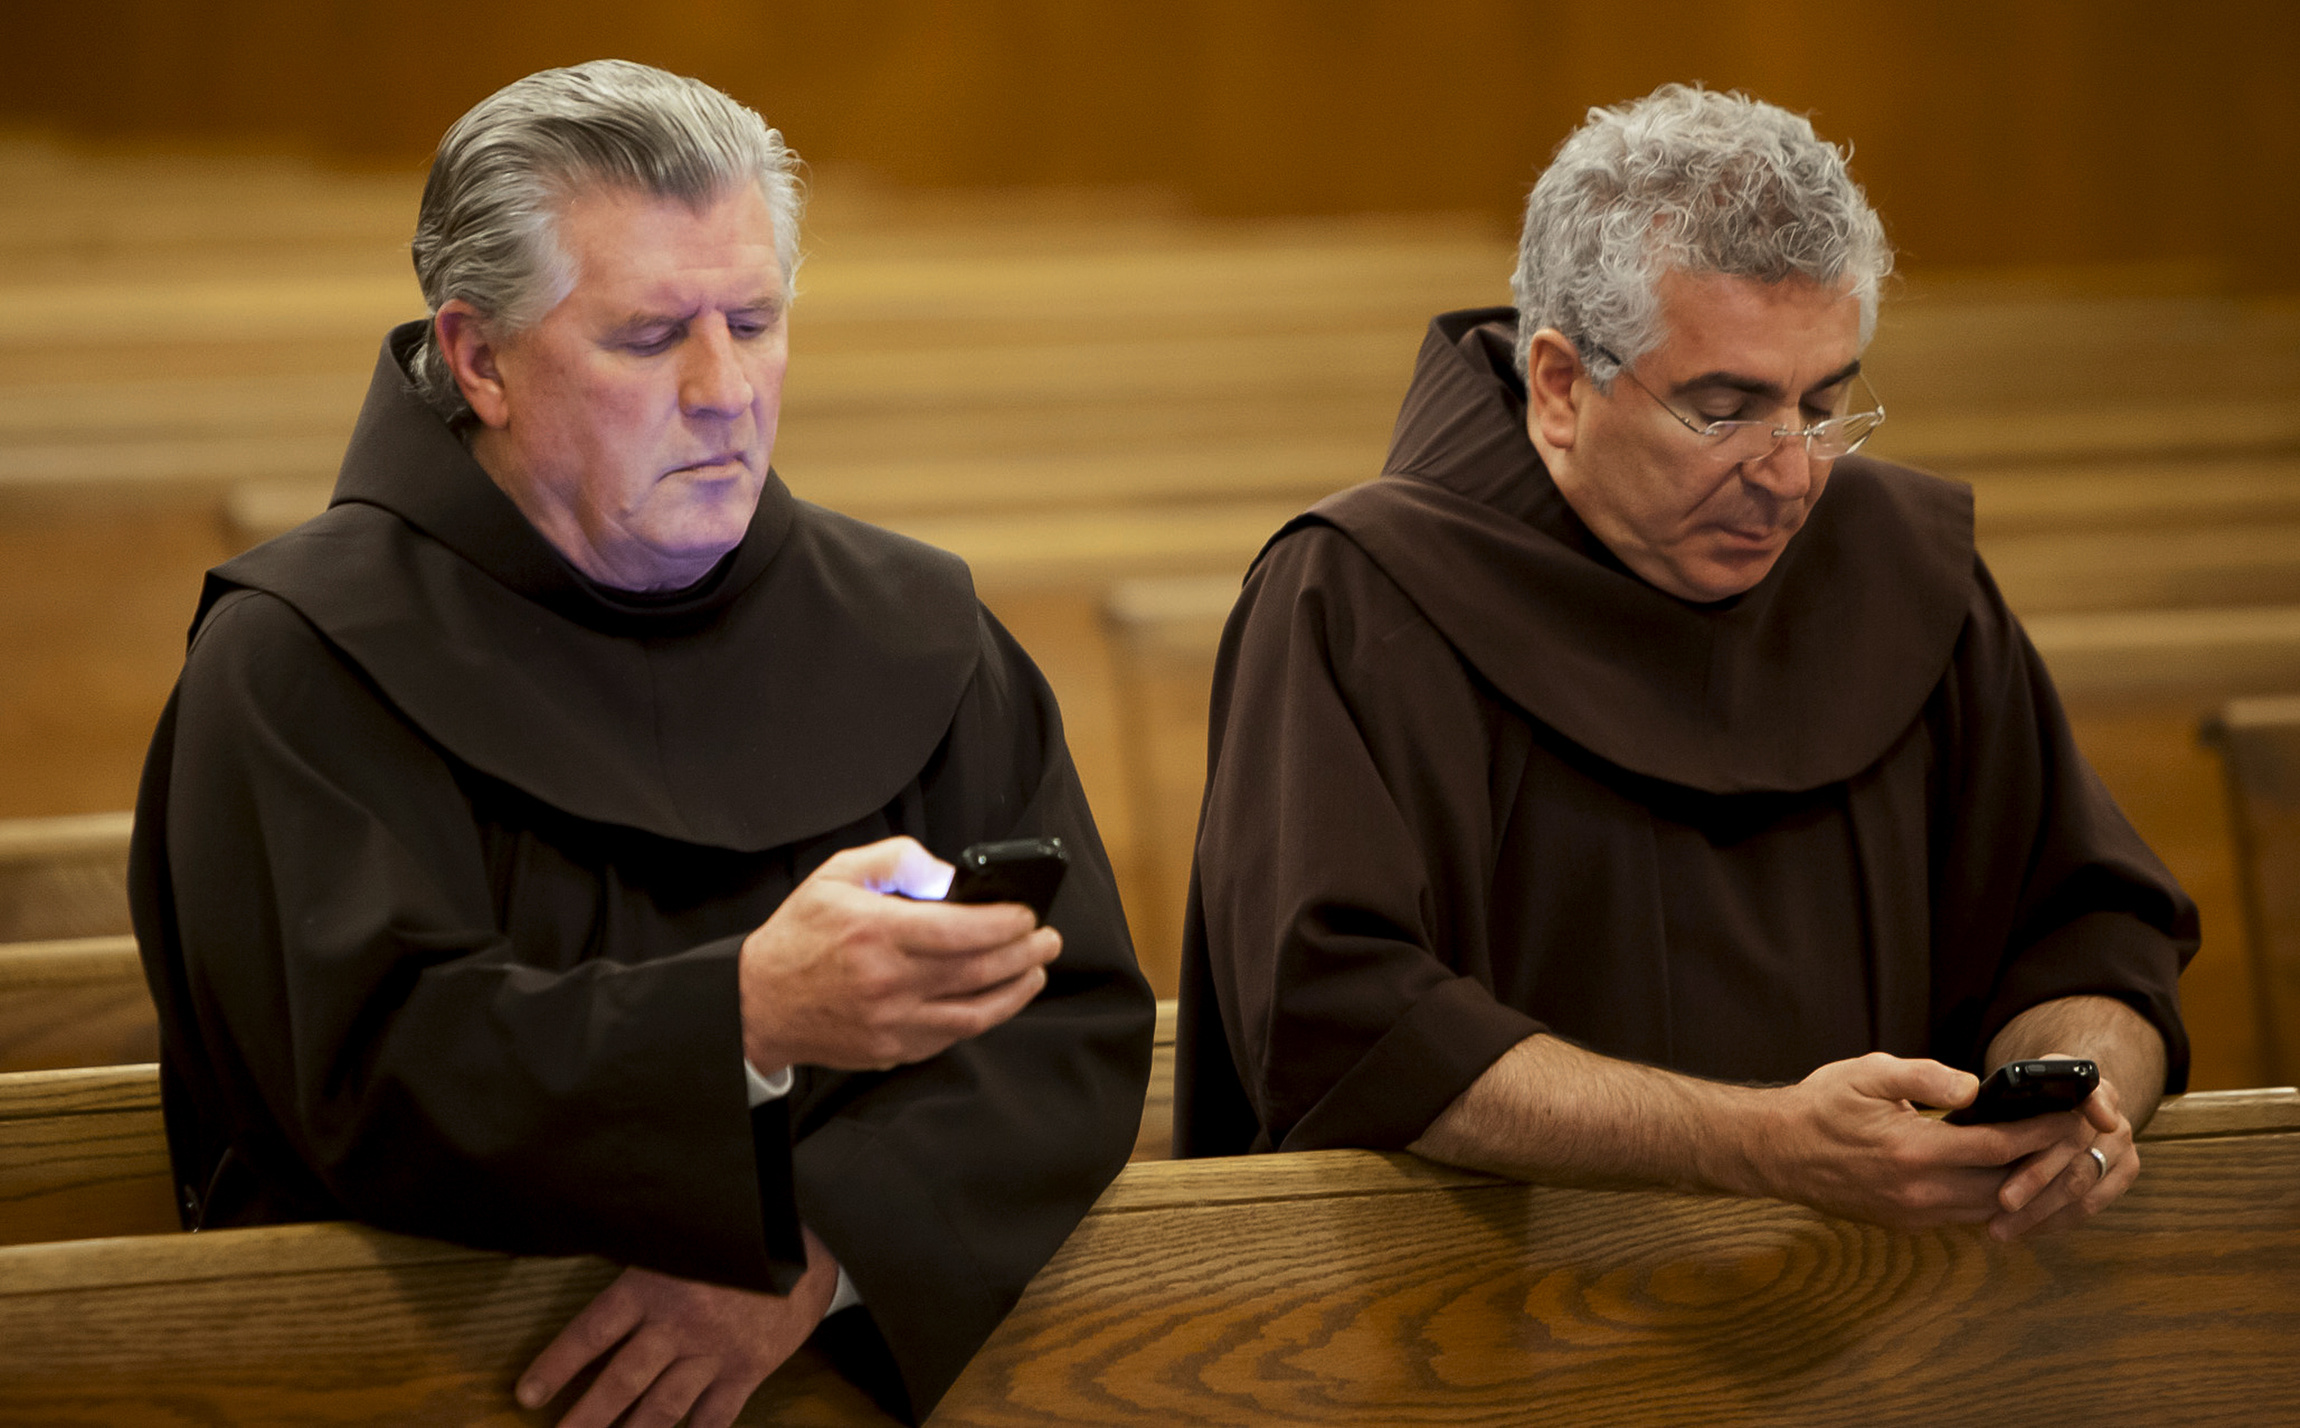 Franciscan Friars Pray For Intentions Via Texting